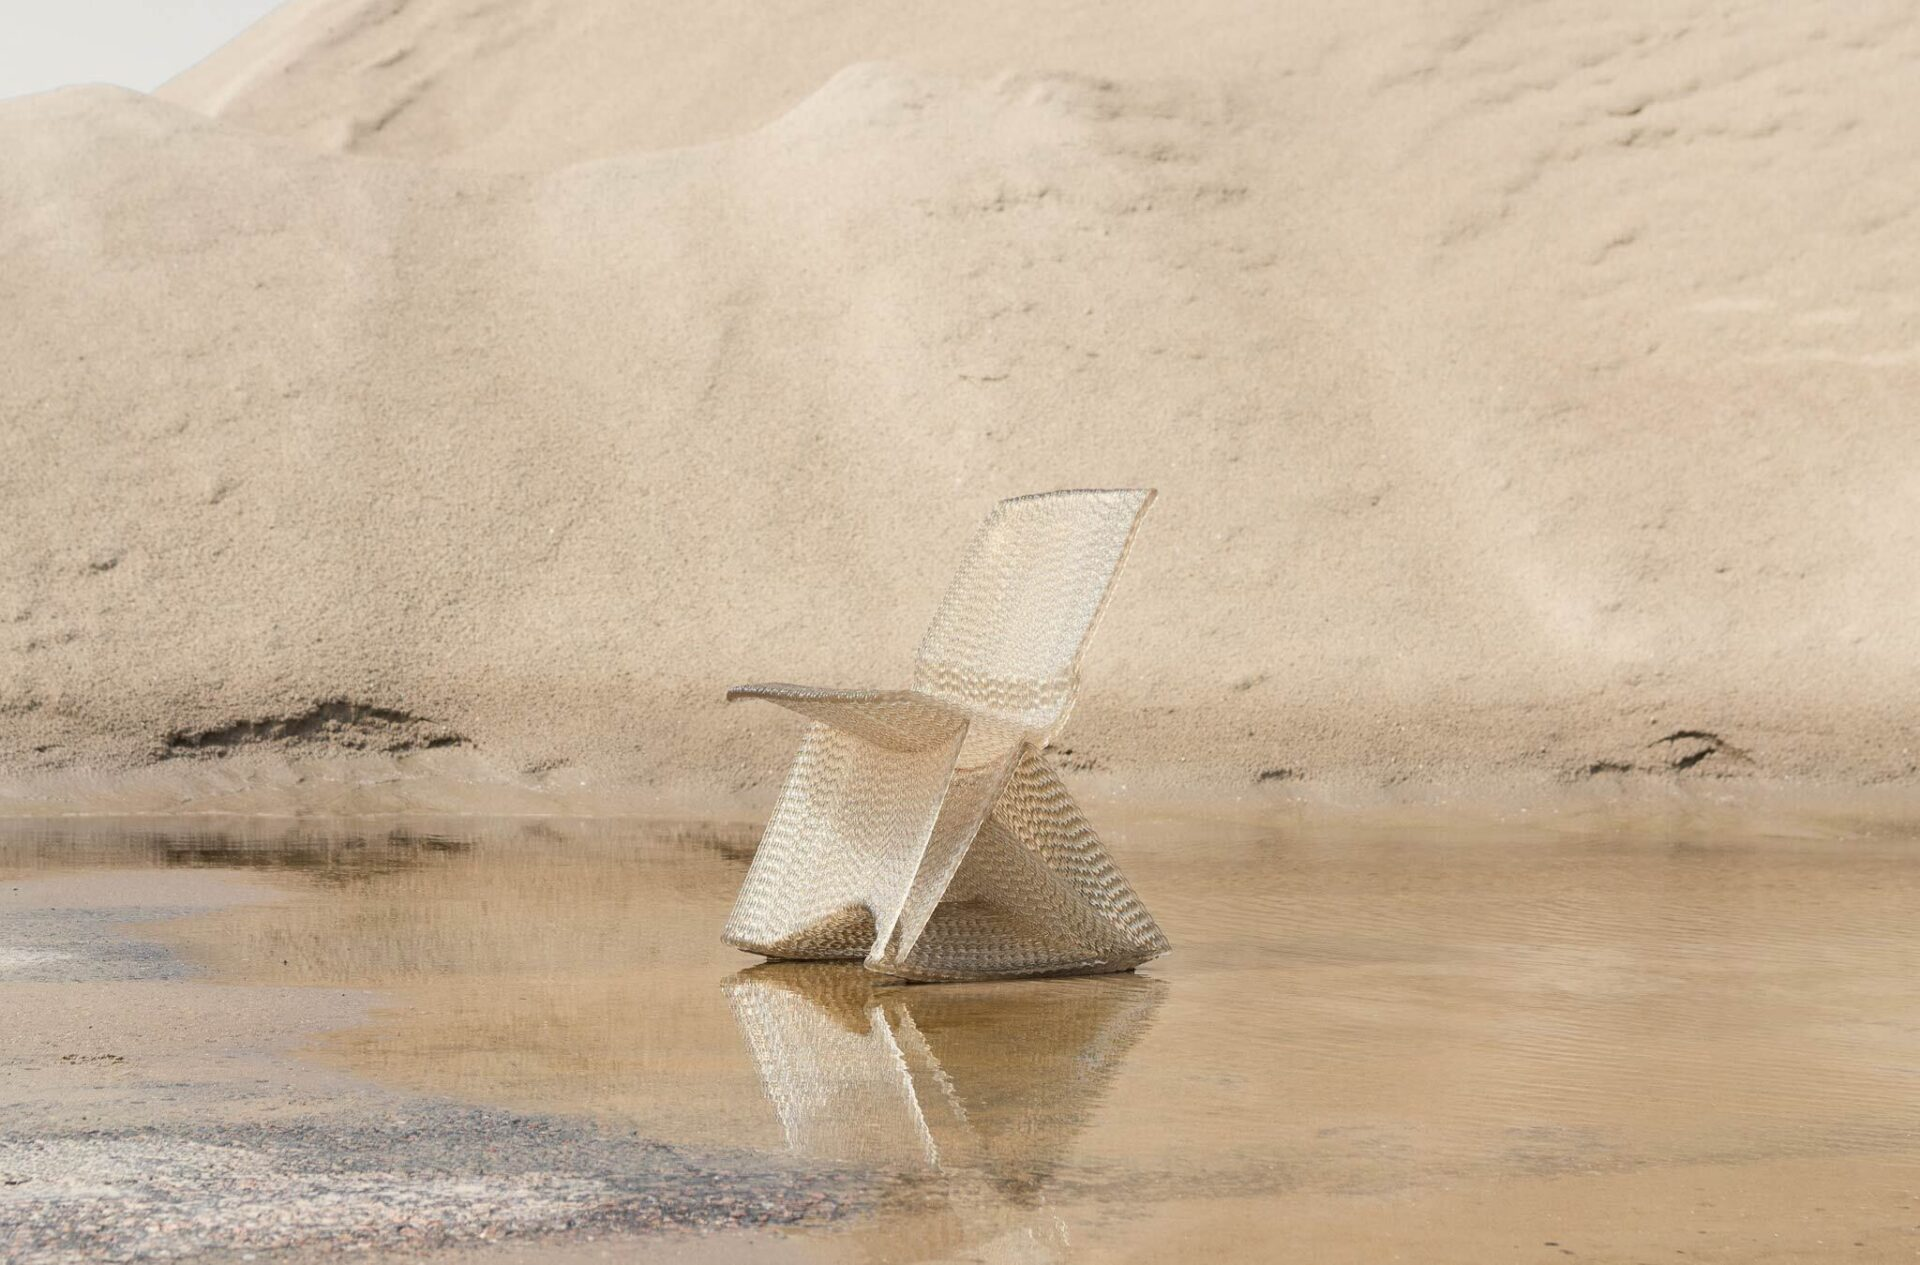 Kooij endless rocking chair 3d printed recycled plastic sand